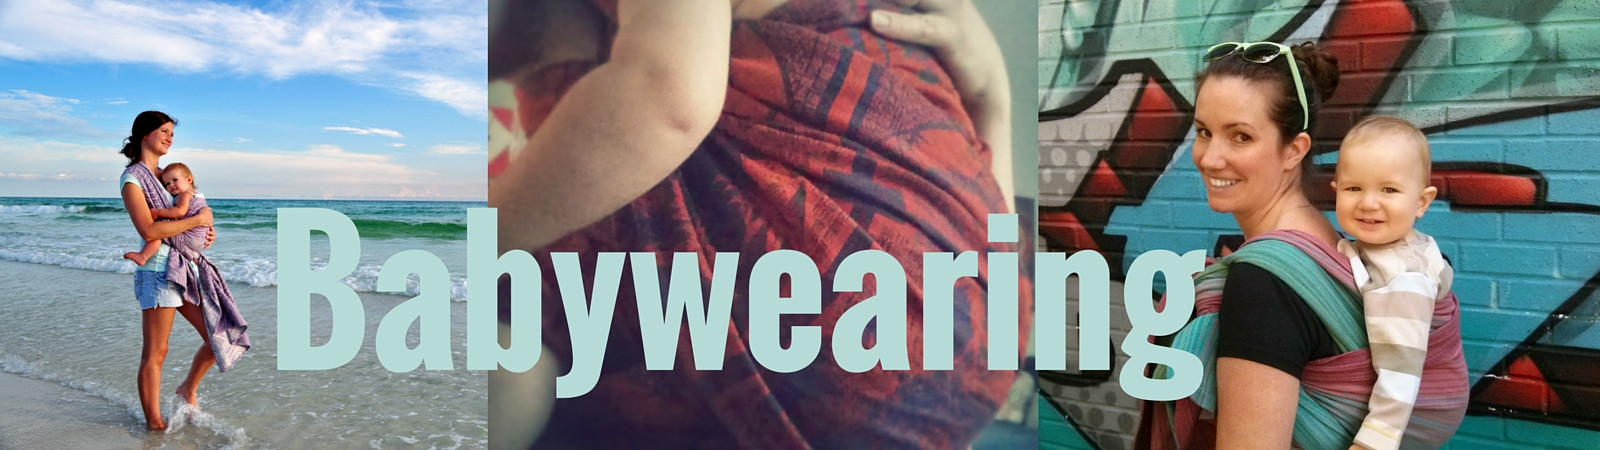 Montreal Babywearing Workshop shows you how to use a babycarrier